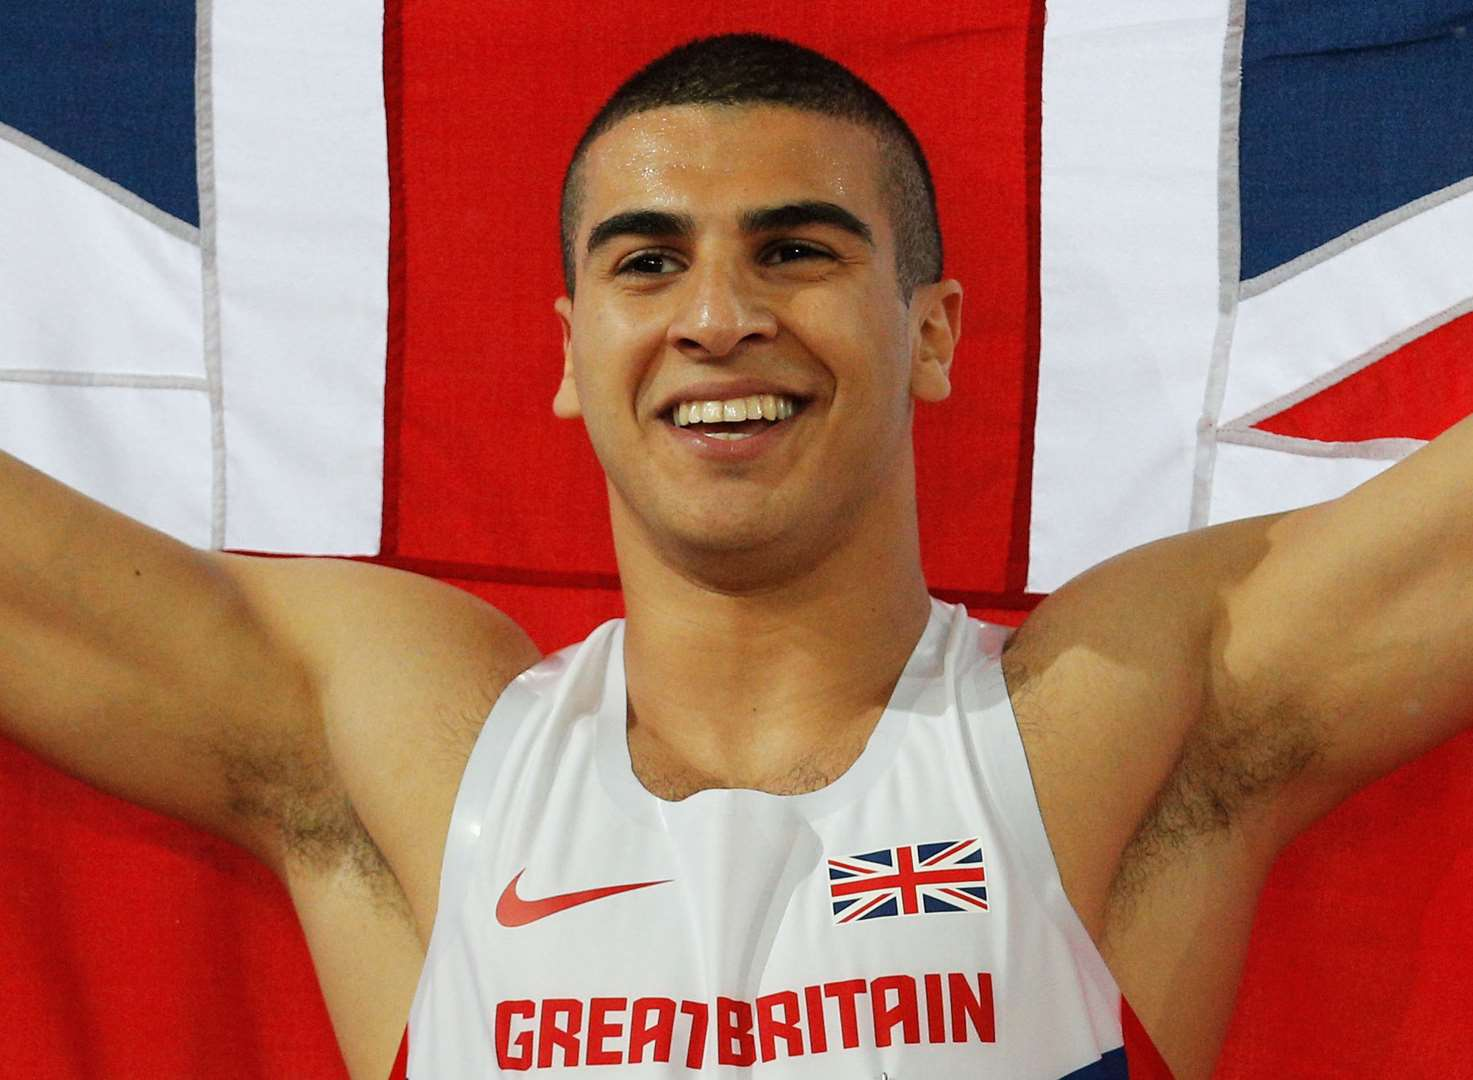 Sub-10 Gemili won't feature in record books... yet